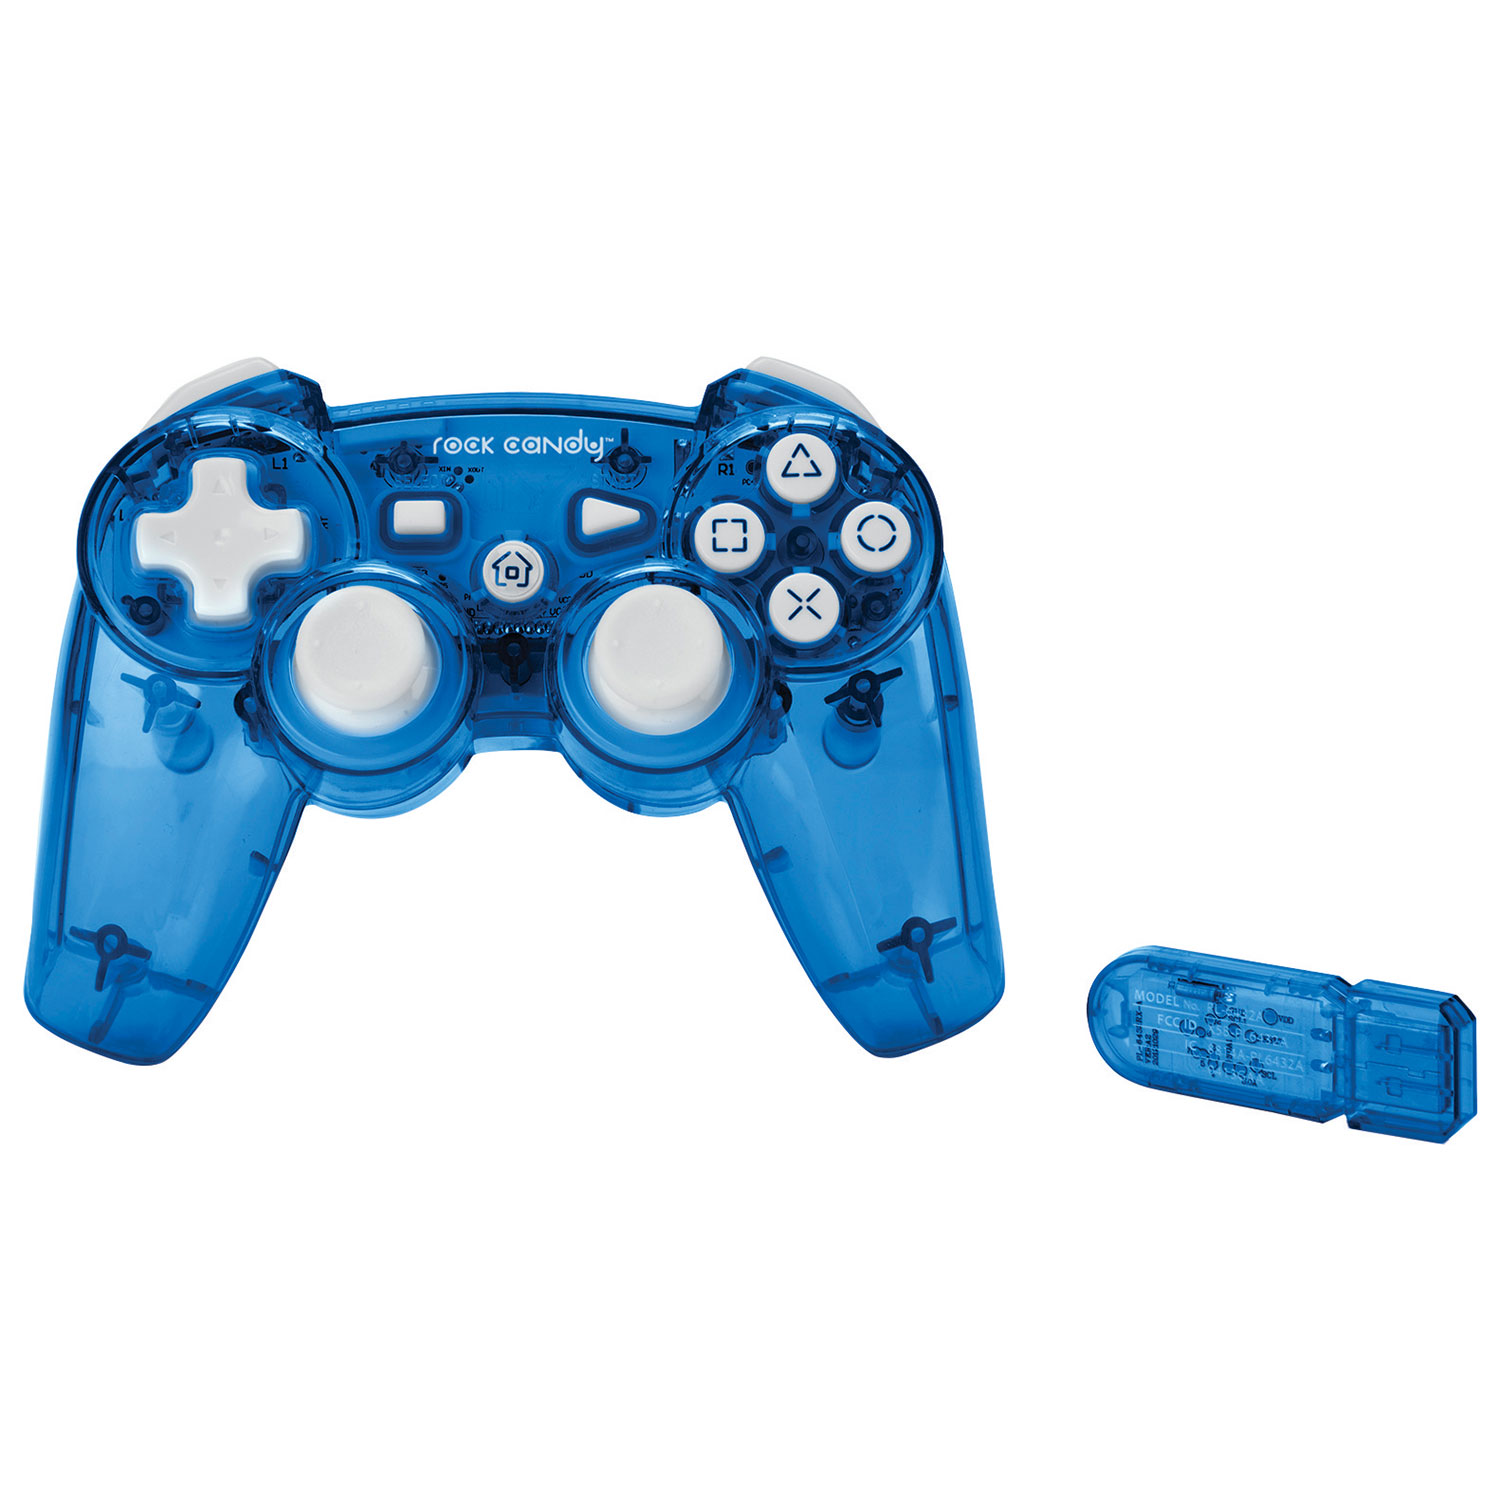 Ps3 Accessories Wired Wireless Controllers Racing Wheel Cables Parts Diagram Playstation Action Offered By Sources From Model Pdp Rock Candy Controller For Blue